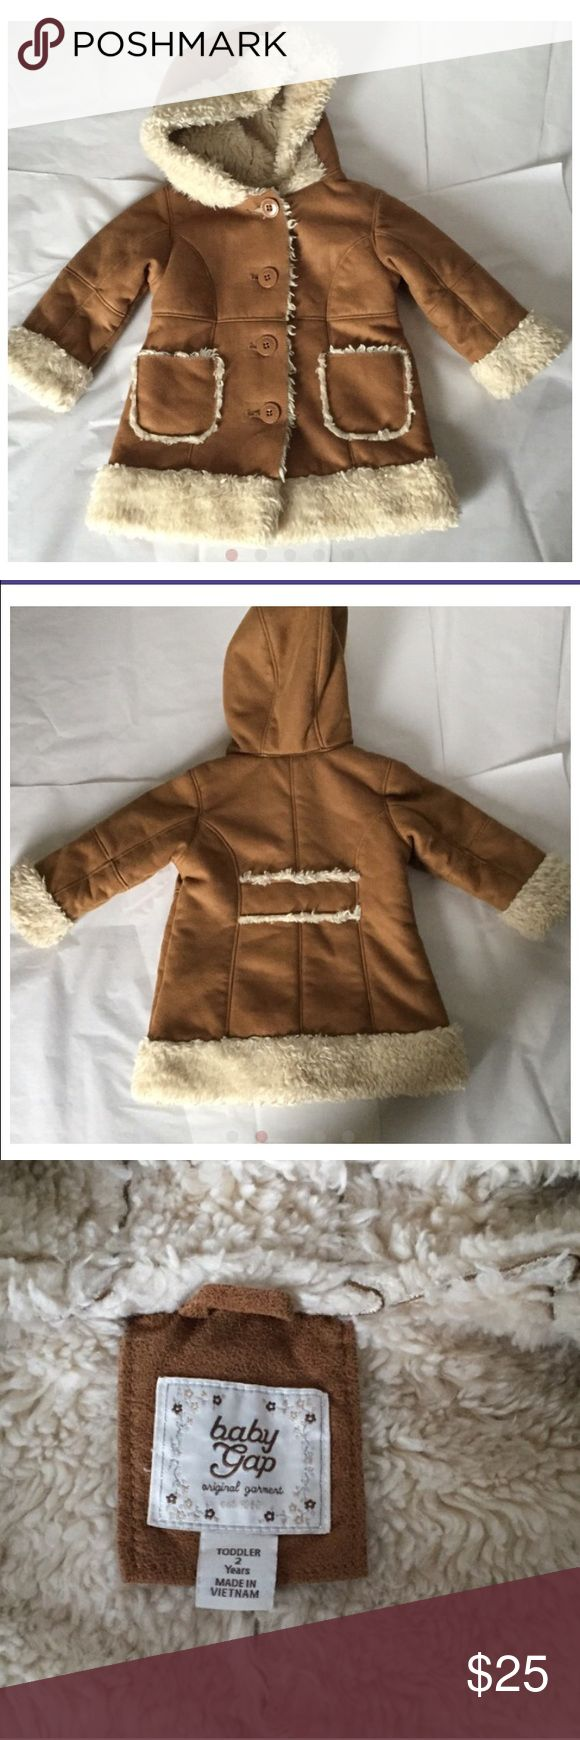 Gap Coat! Gap coat! Brown lined with faux fur! Adorable and warm! Size 2 toddler! About knee length! Gently used condition! 2 pockets in the front! GAP Jackets & Coats